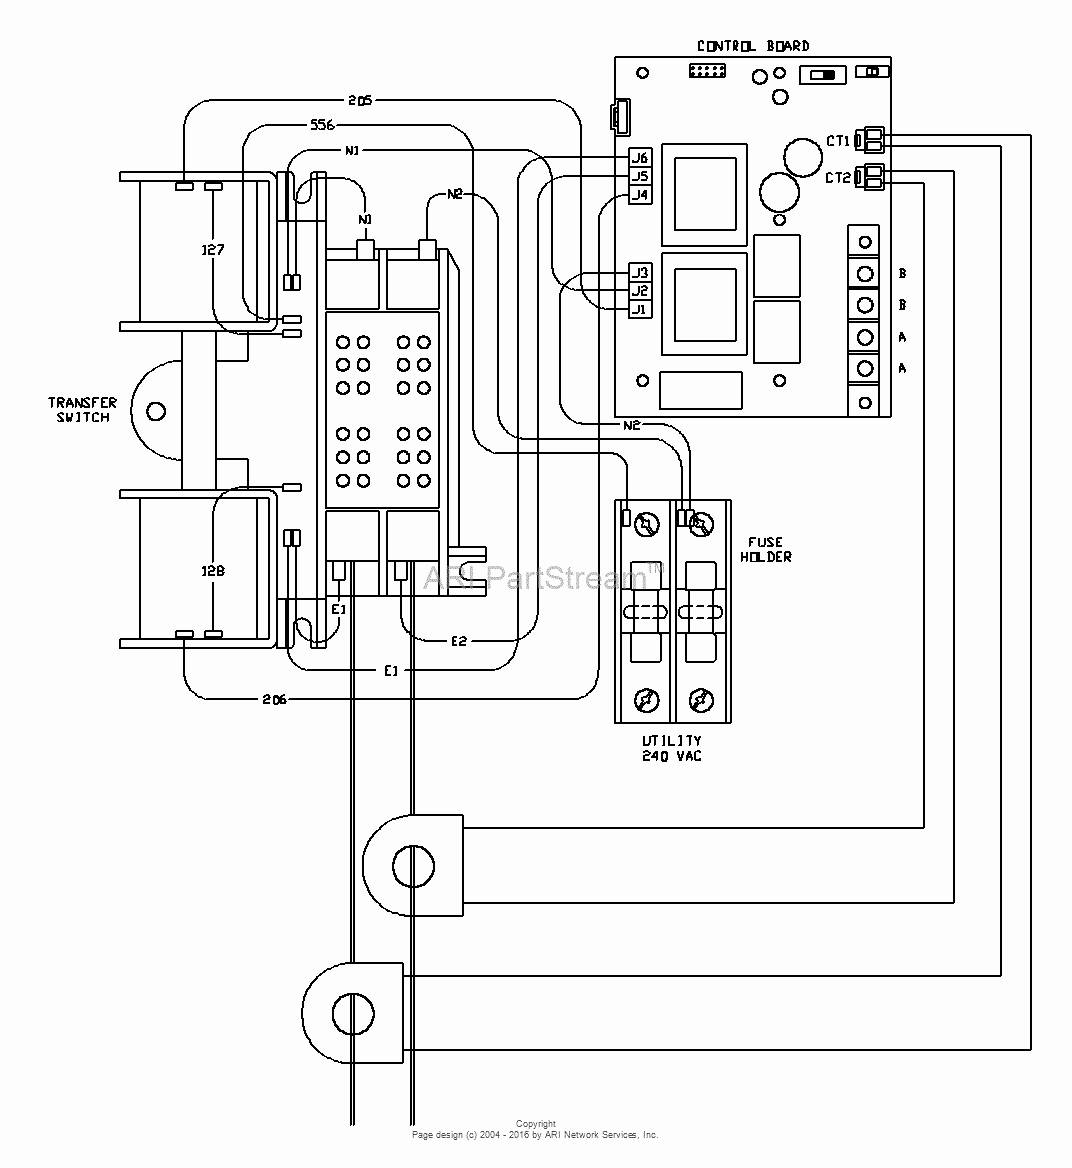 Generac 100 Amp Automatic Transfer Switch Wiring Diagram New Generac - Generac 100 Amp Automatic Transfer Switch Wiring Diagram